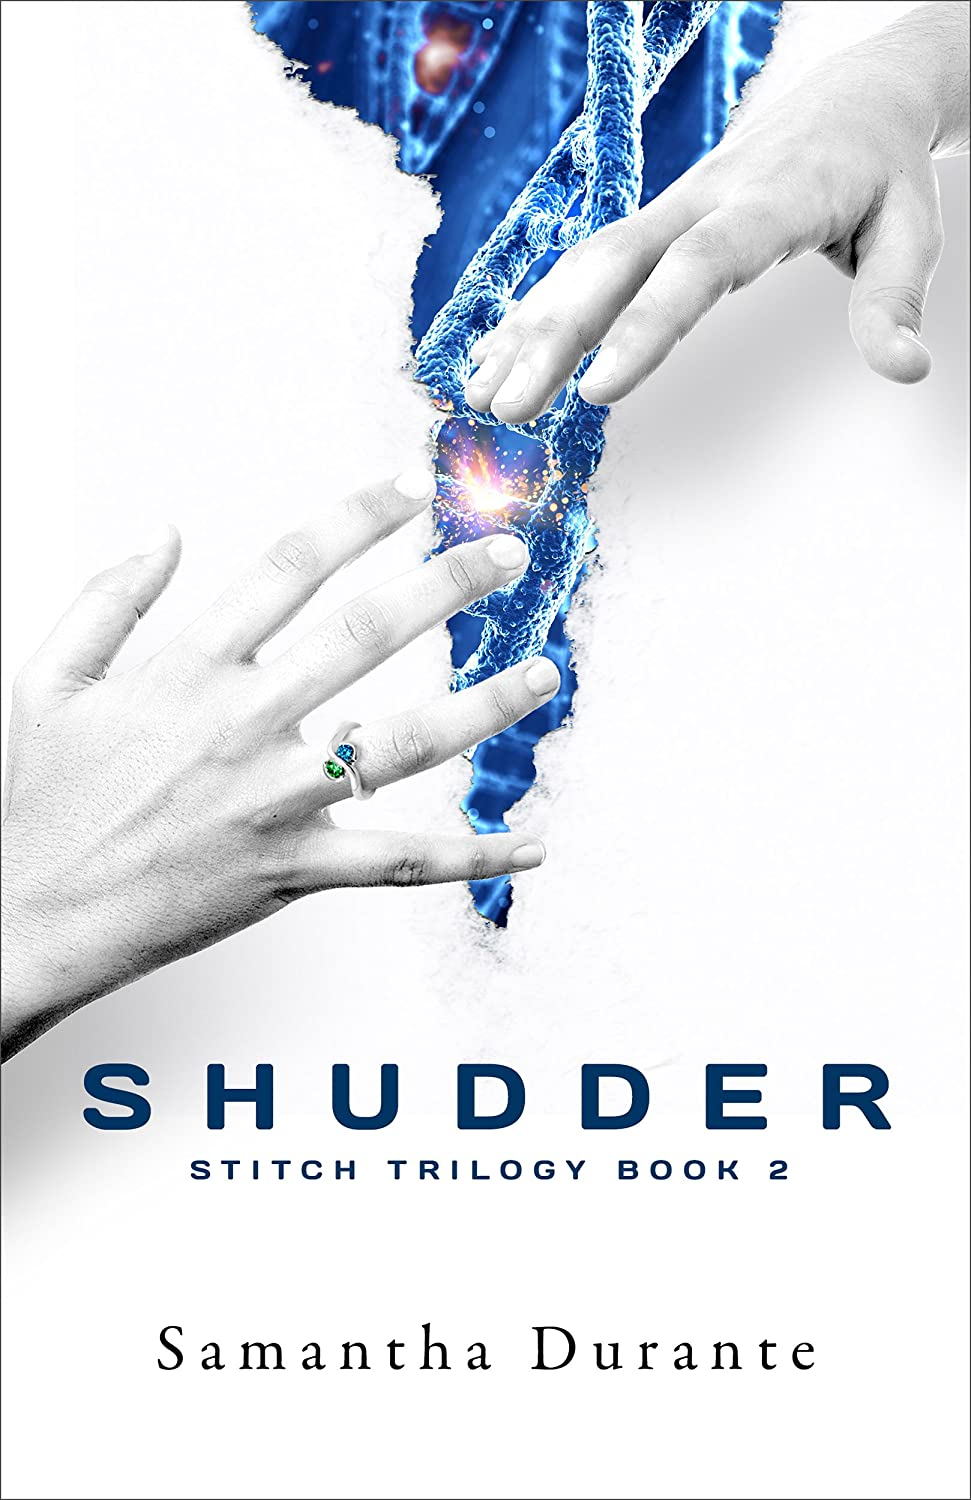 SHUDDER by Samantha Durante